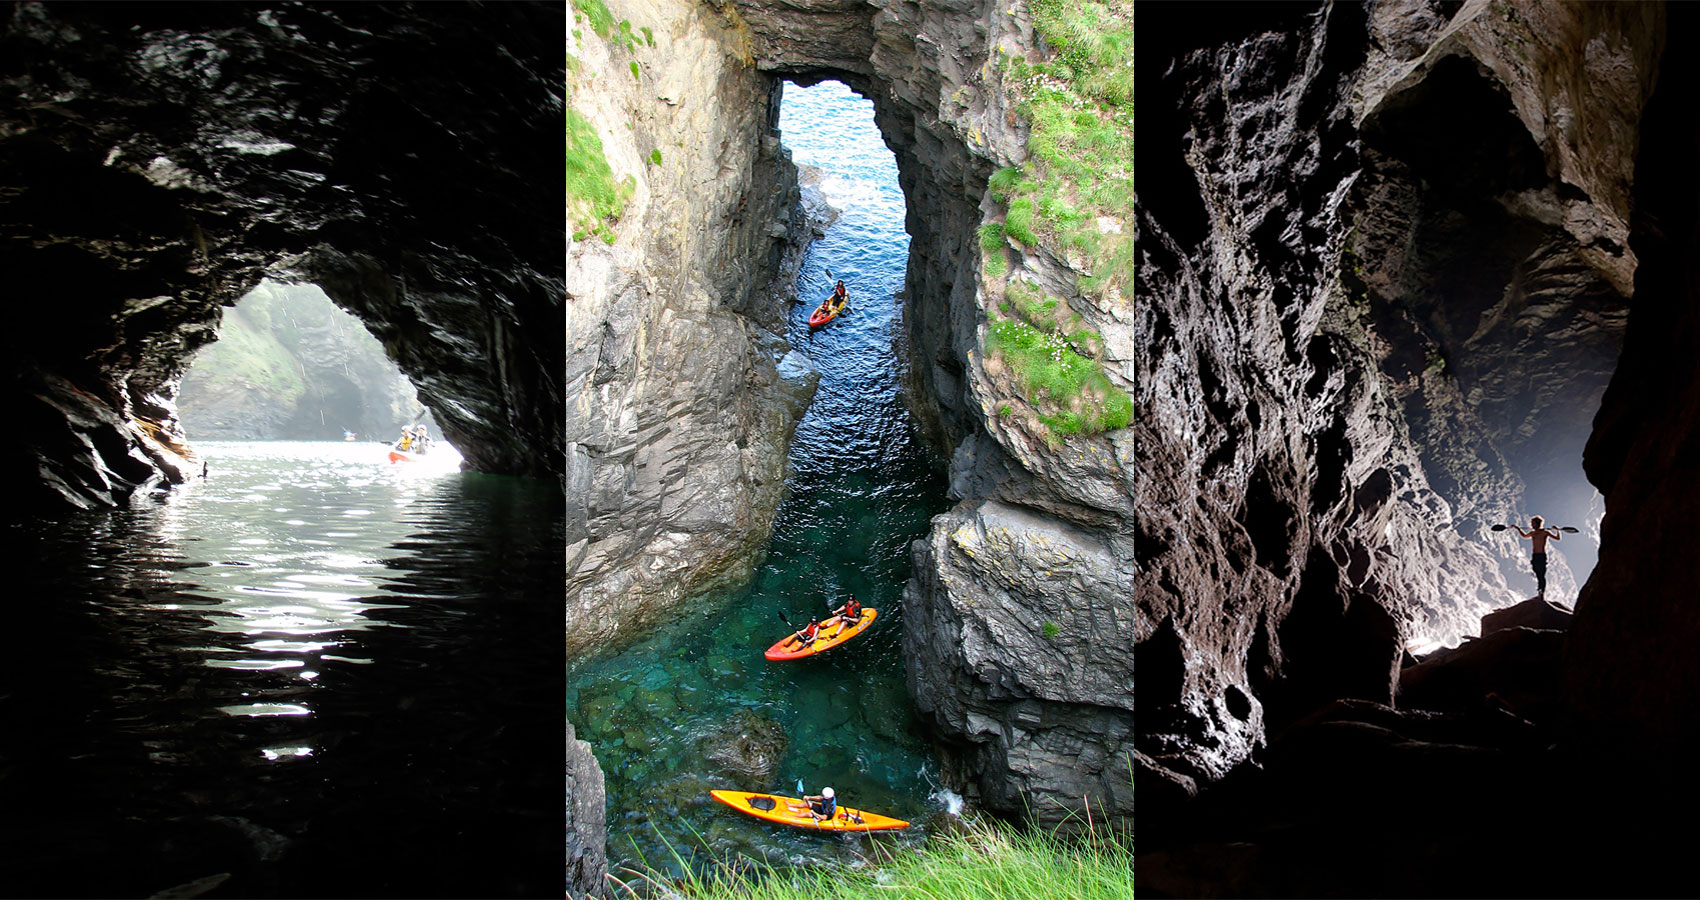 E.g. 'Kayak tours Cornwall' Explore the caves of the North Cornish Coast by kayak.